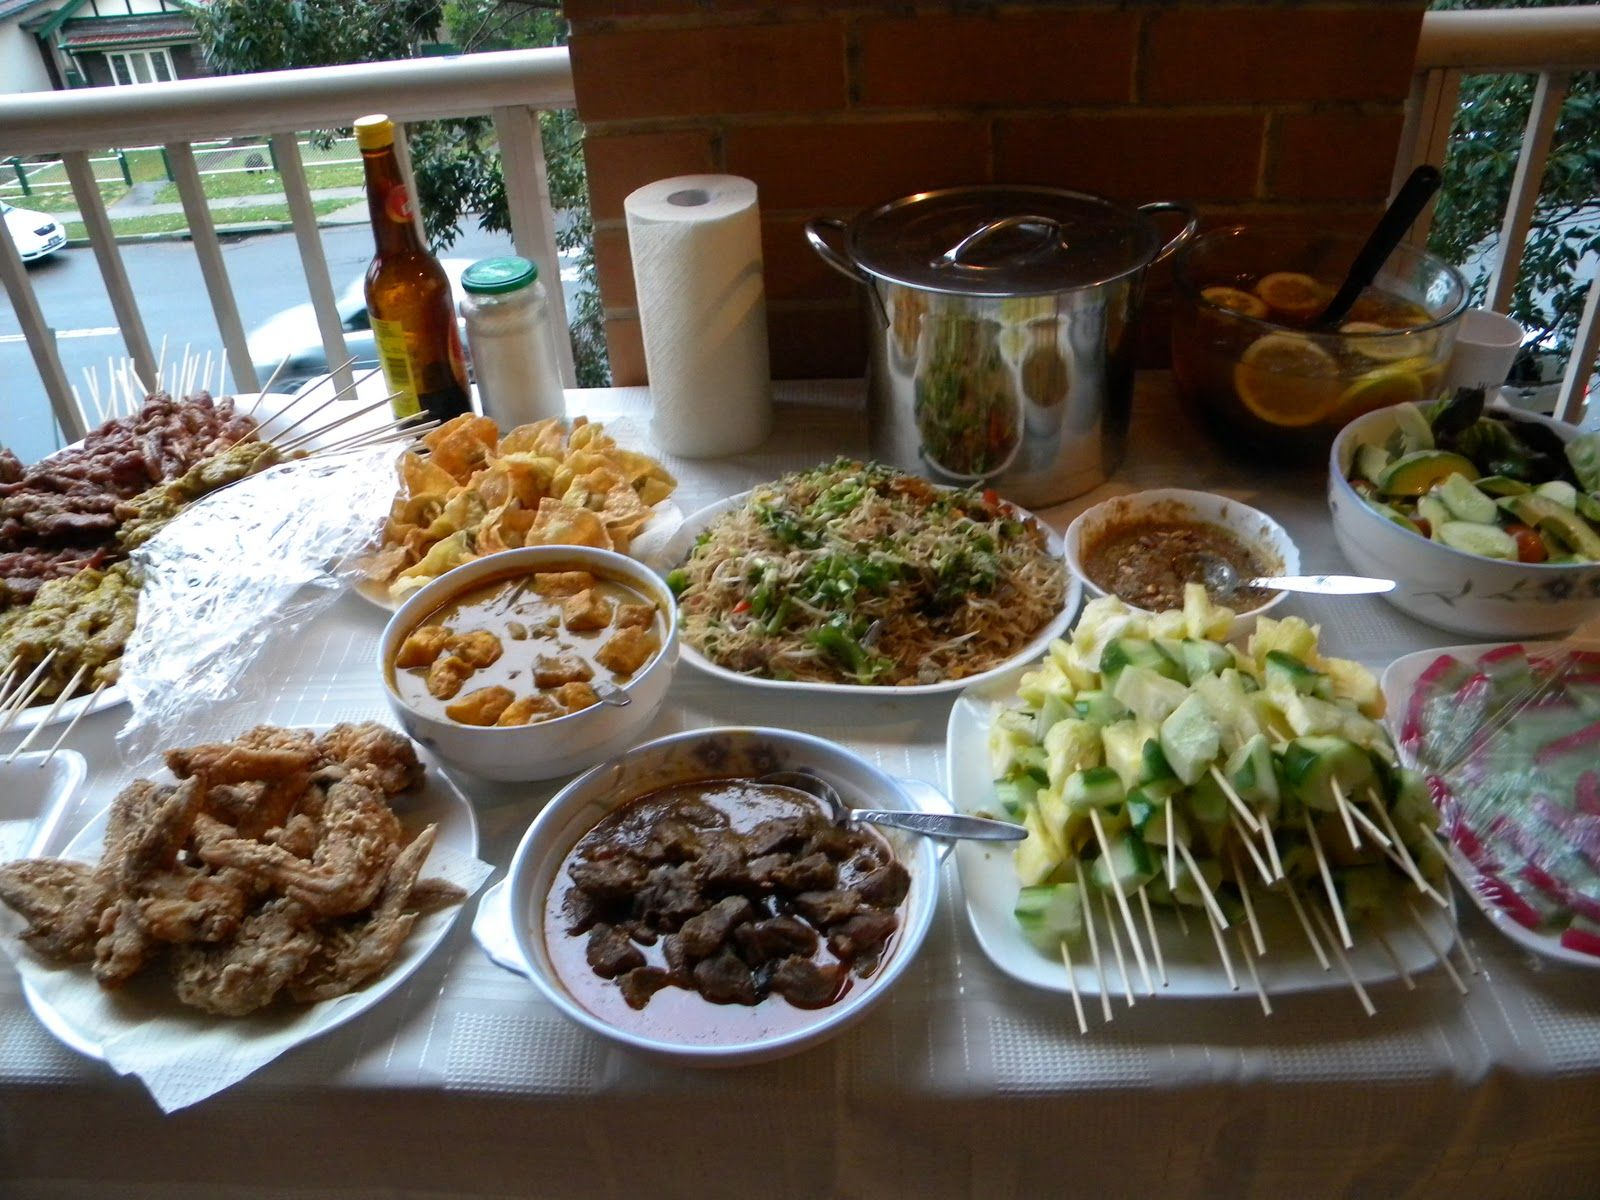 Best 25 housewarming party foods ideas on pinterest for Housewarming party activities